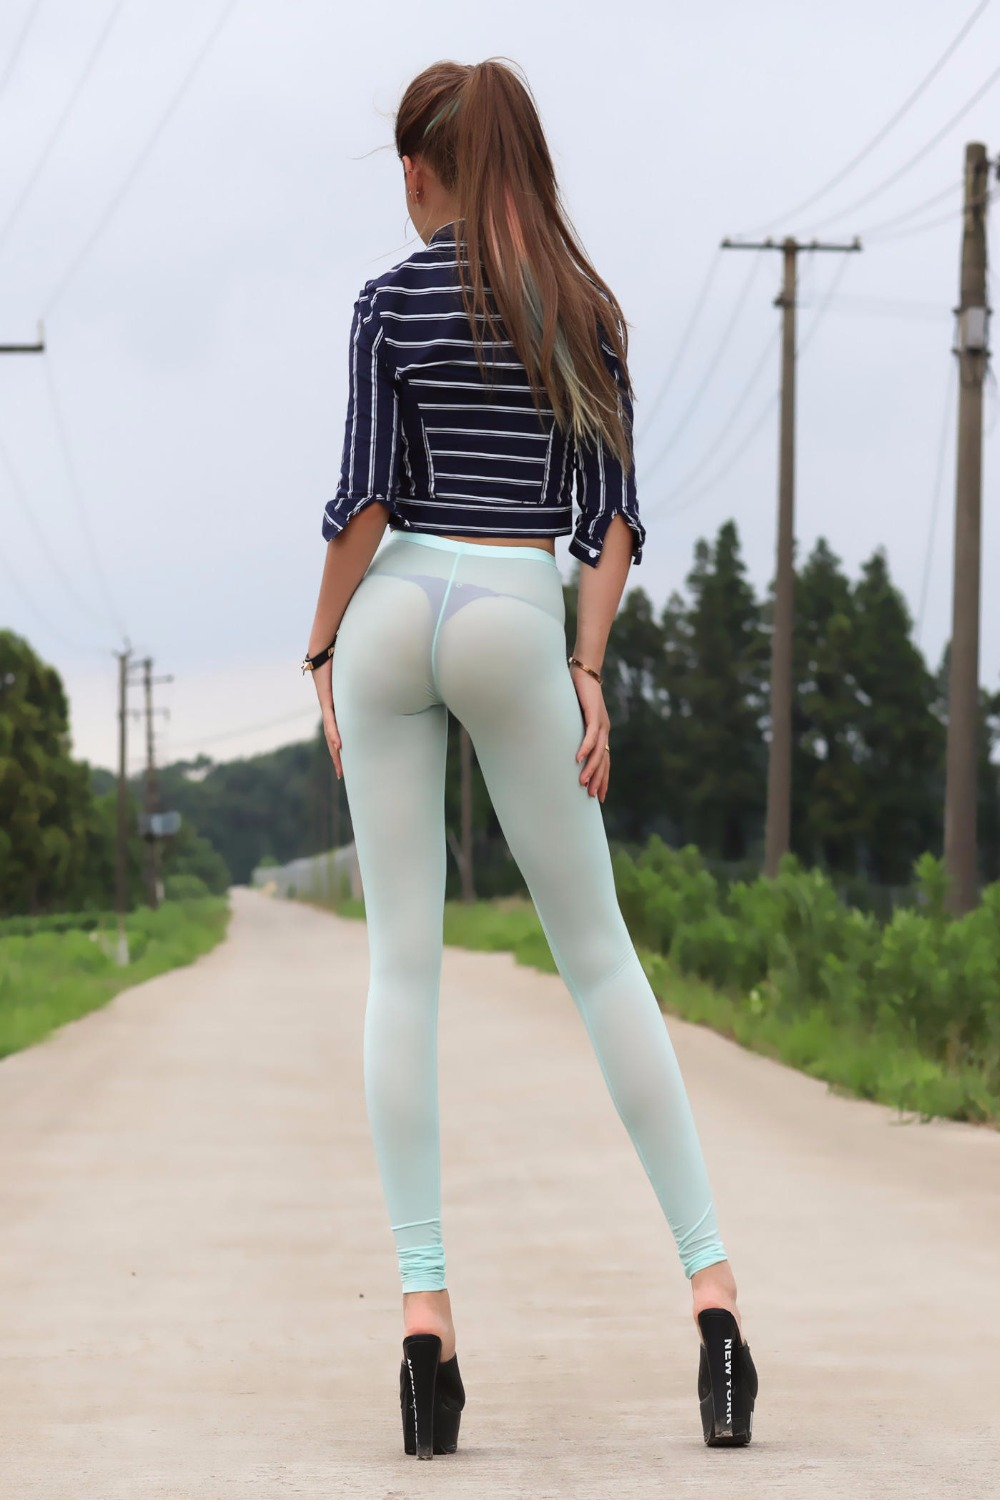 Sexy tight trousers